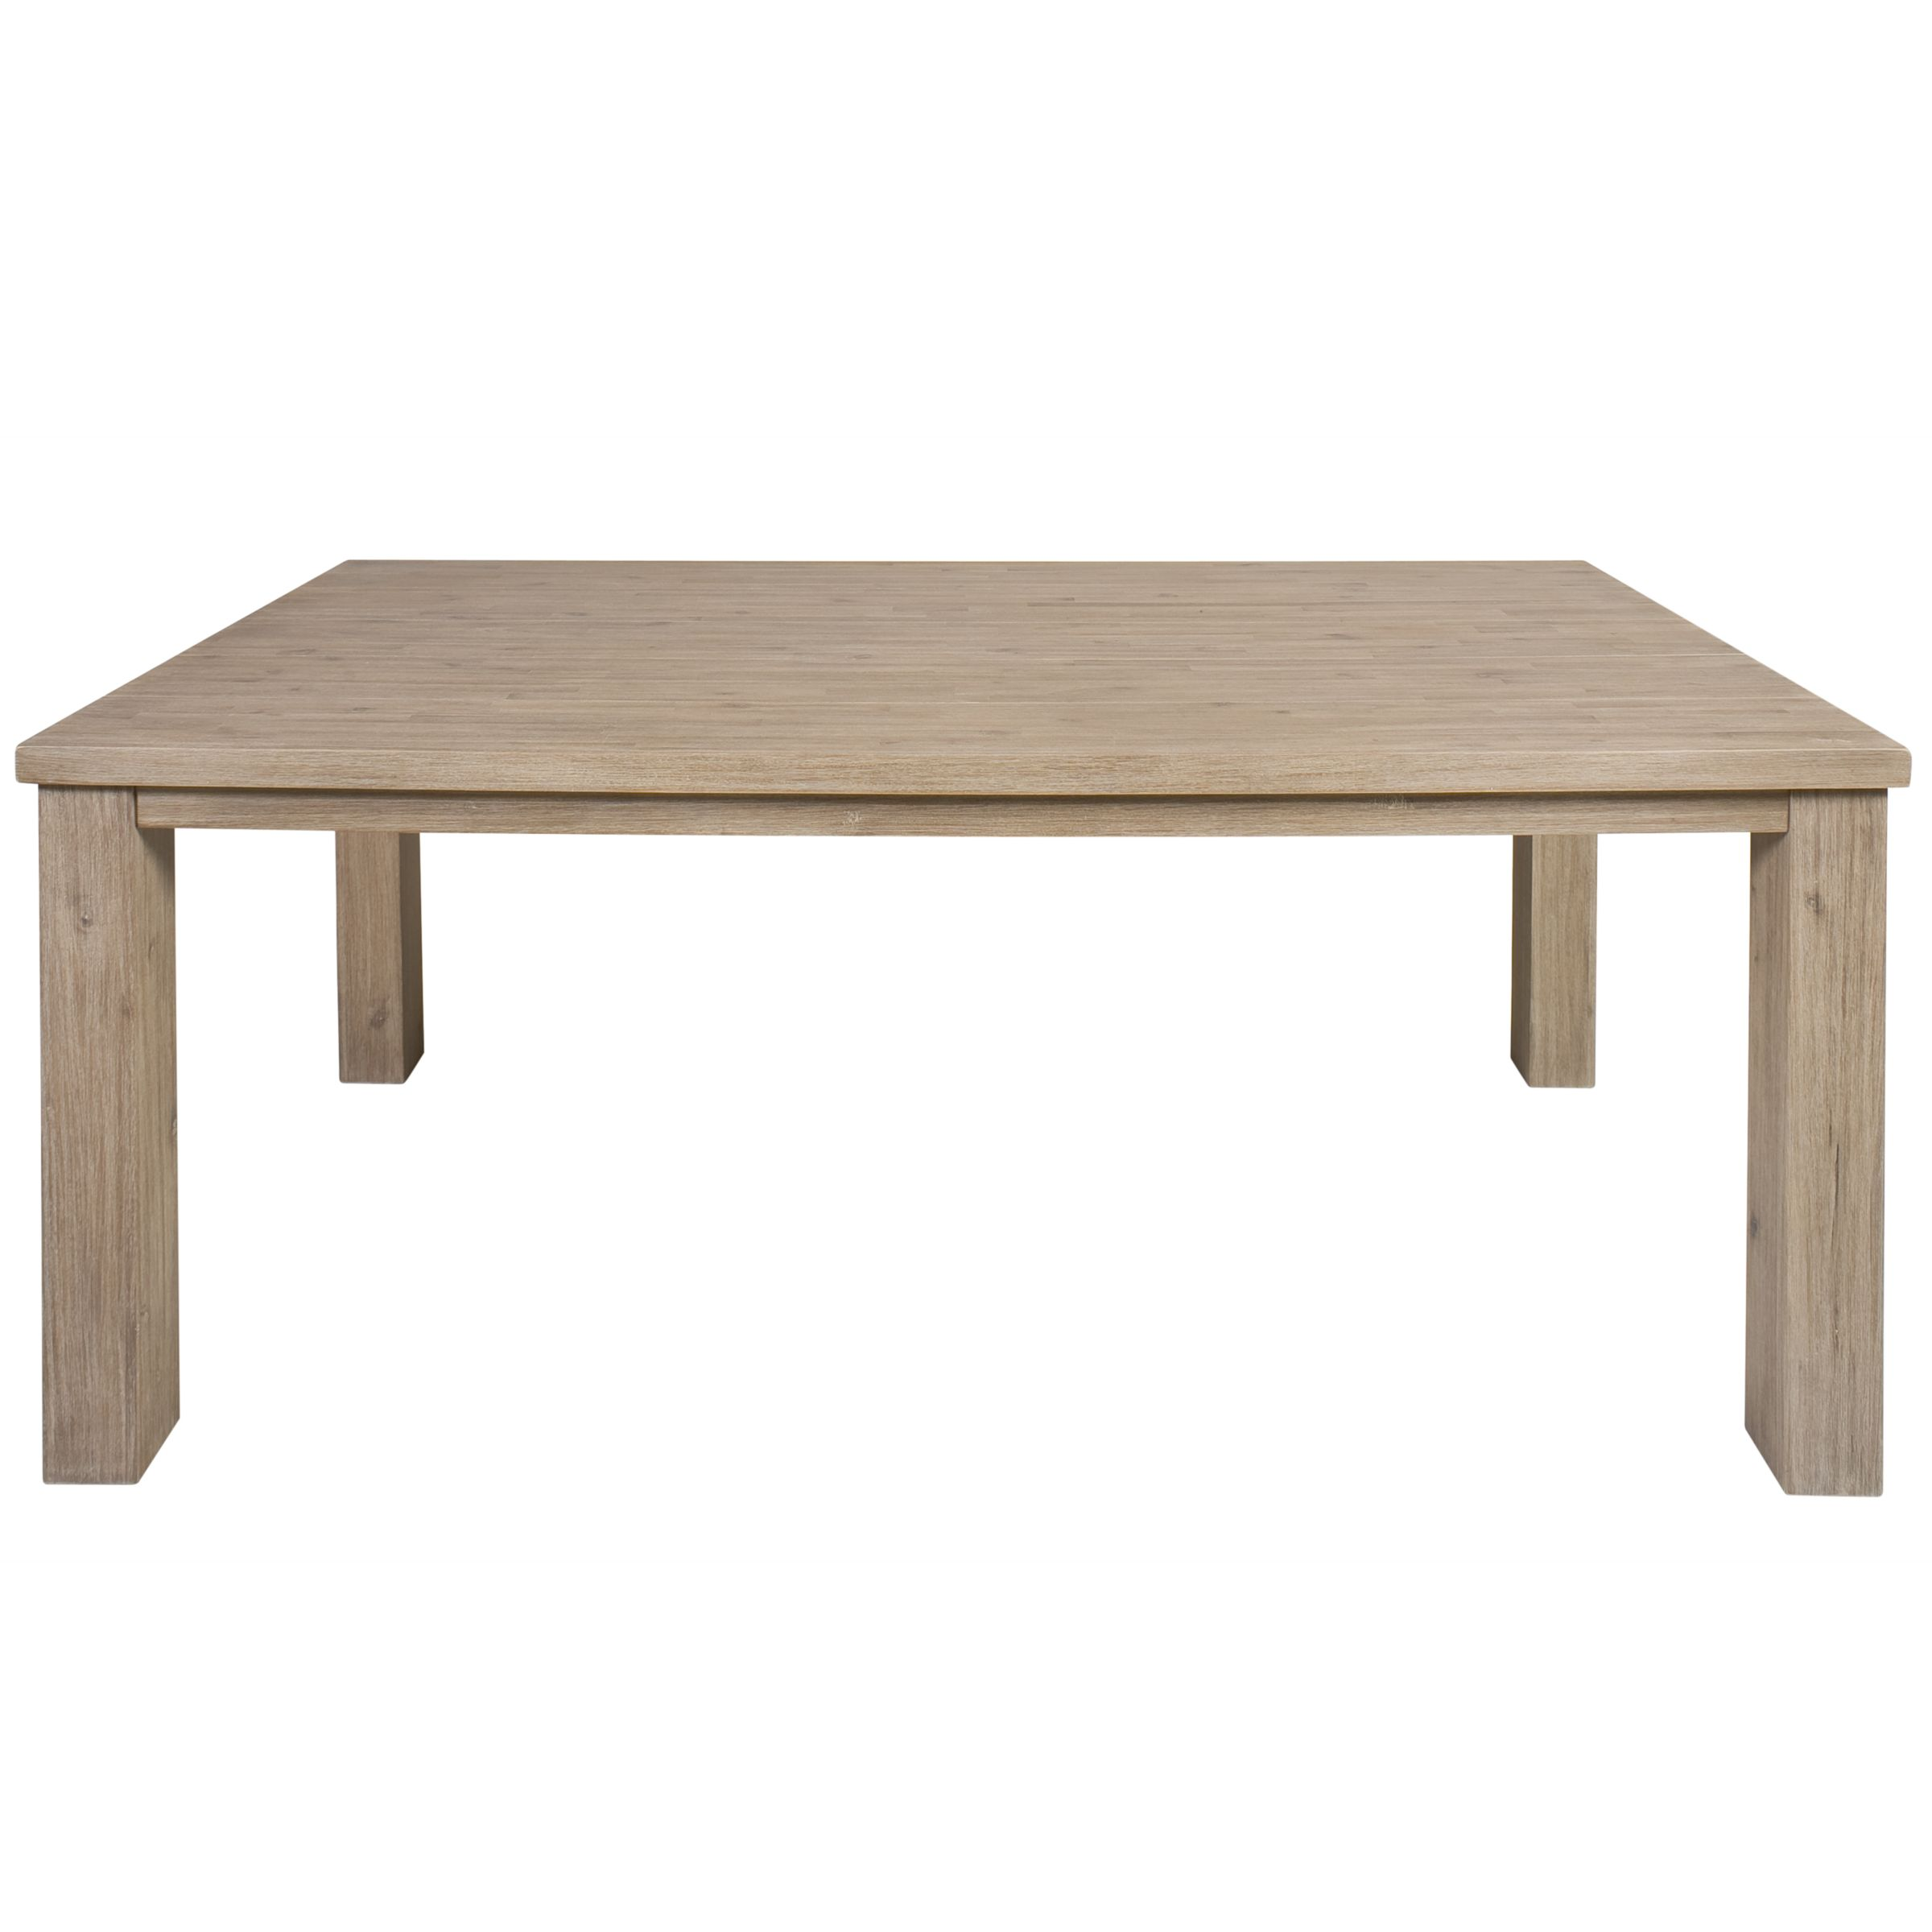 john lewis dining furniture reviews : 231019175 from www.comparestoreprices.co.uk size 1600 x 1600 jpeg 124kB